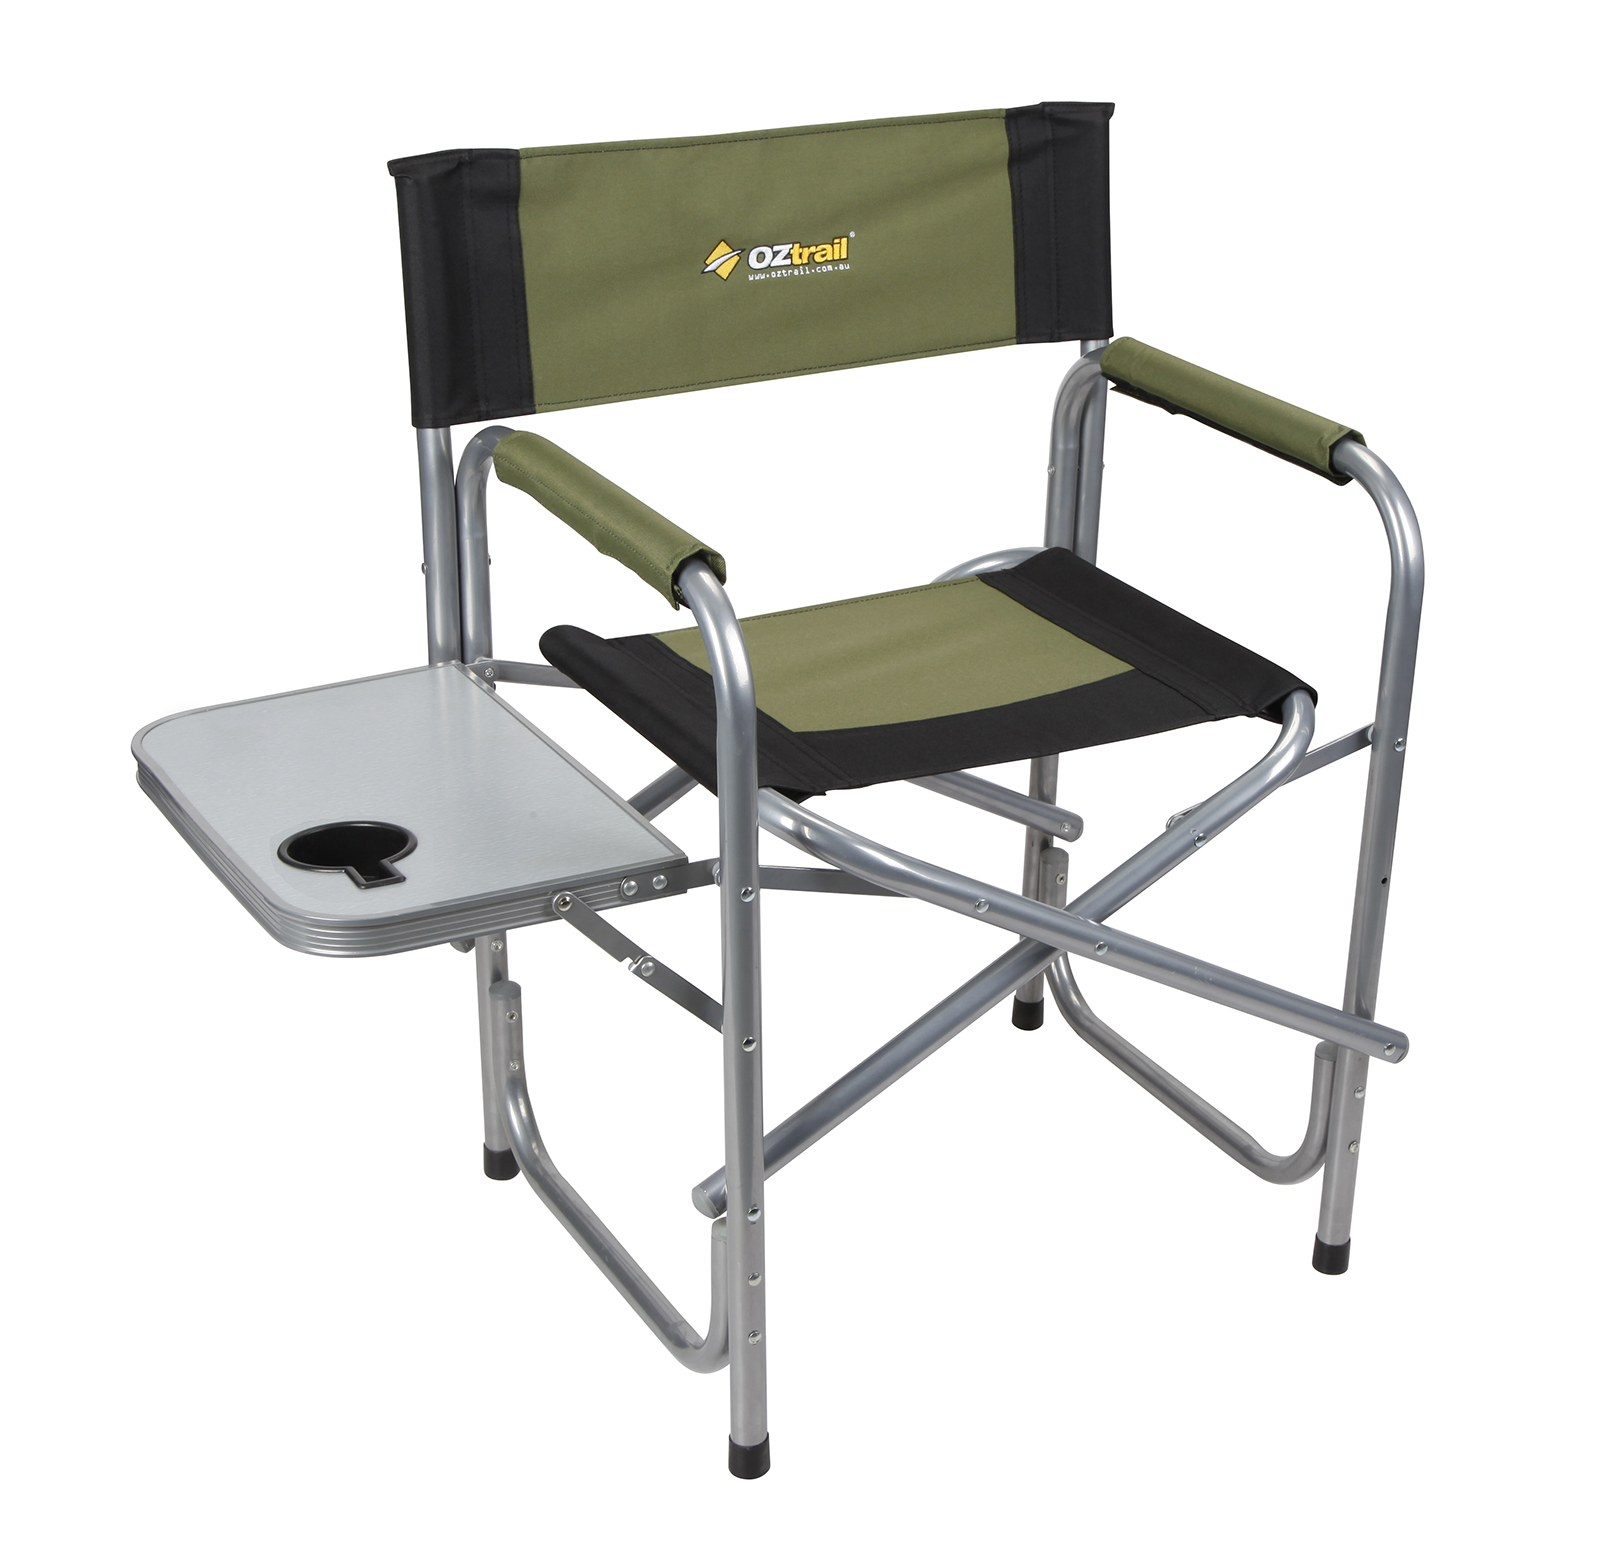 camping chairs with side table tripp trapp chair instructions oztrail directors folding classic